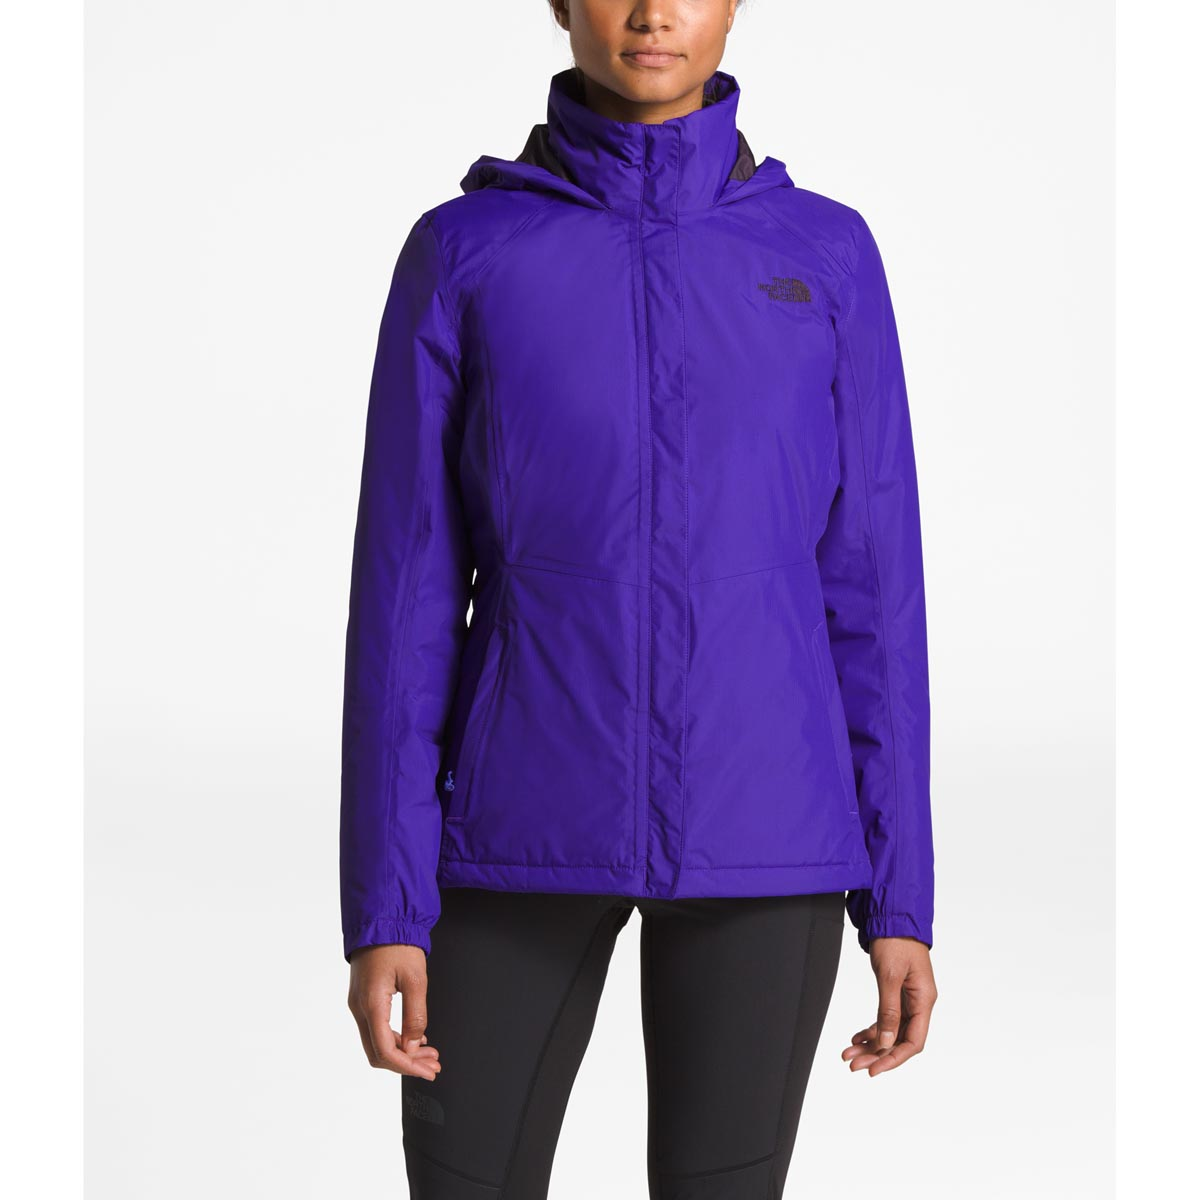 The North Face Women's Resolve Insulated Jacket - Past Season